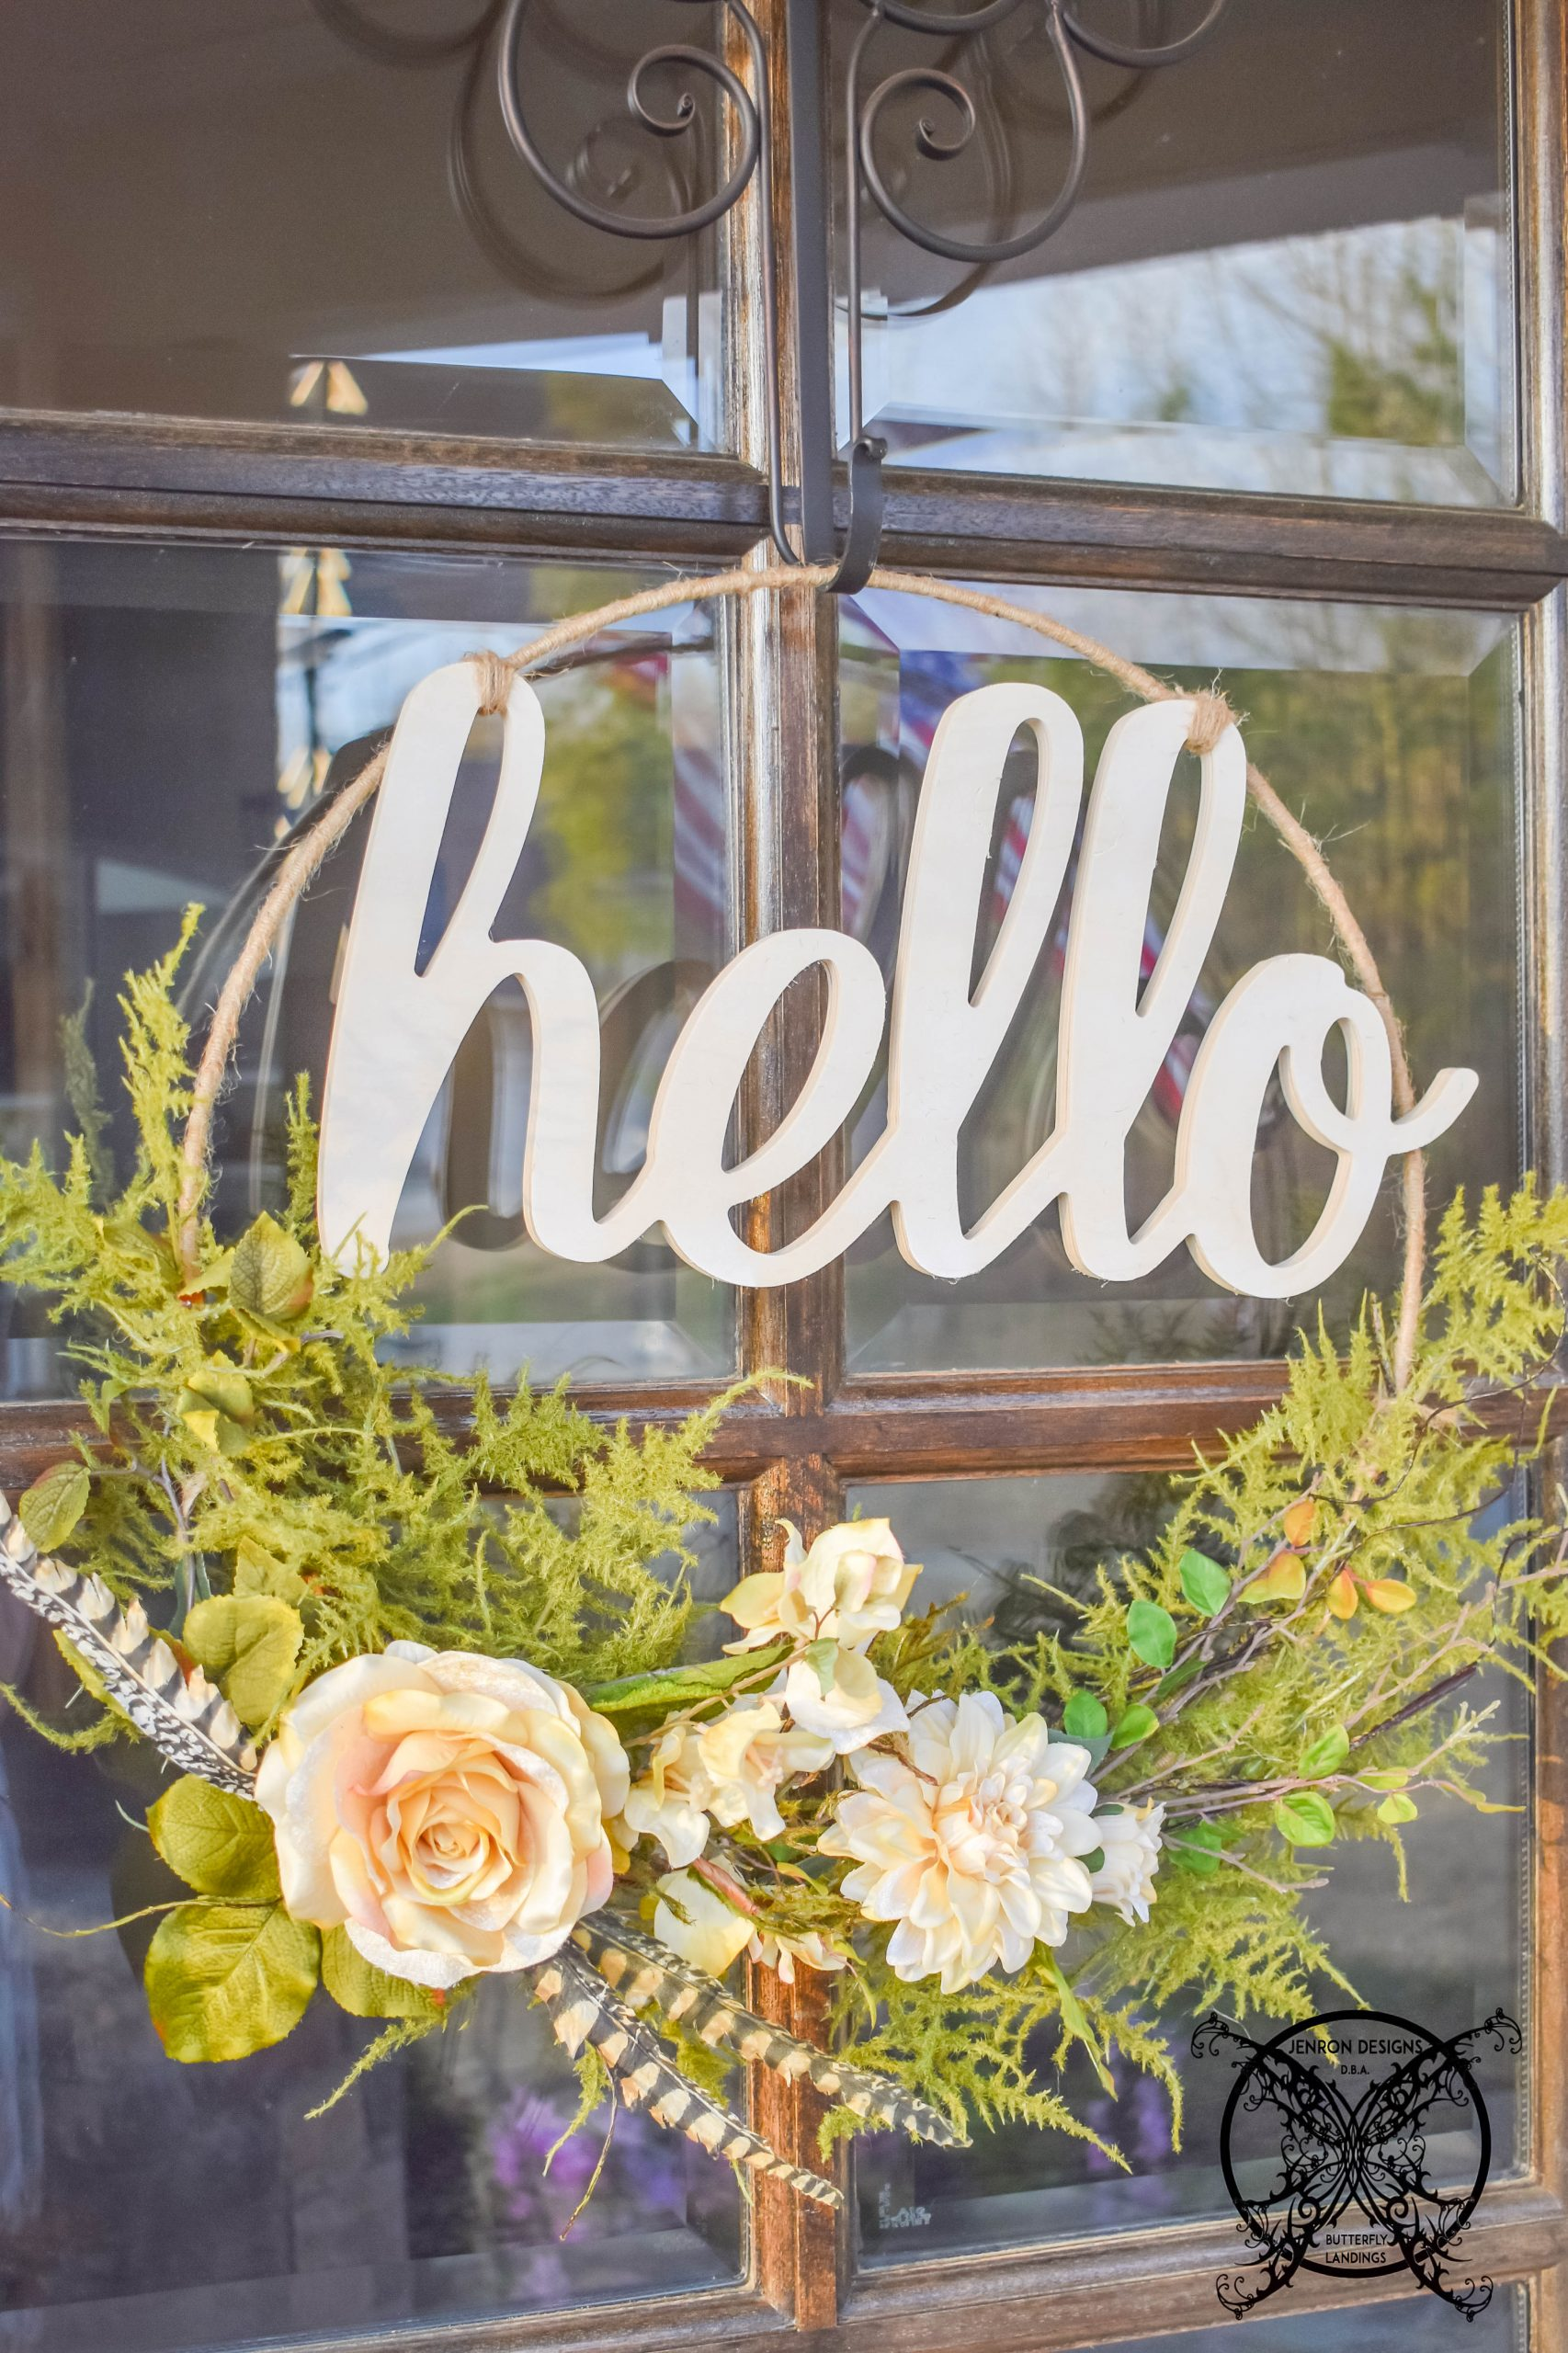 How to Make A Welcoming Hoop Wreath JENRON DESIGNS